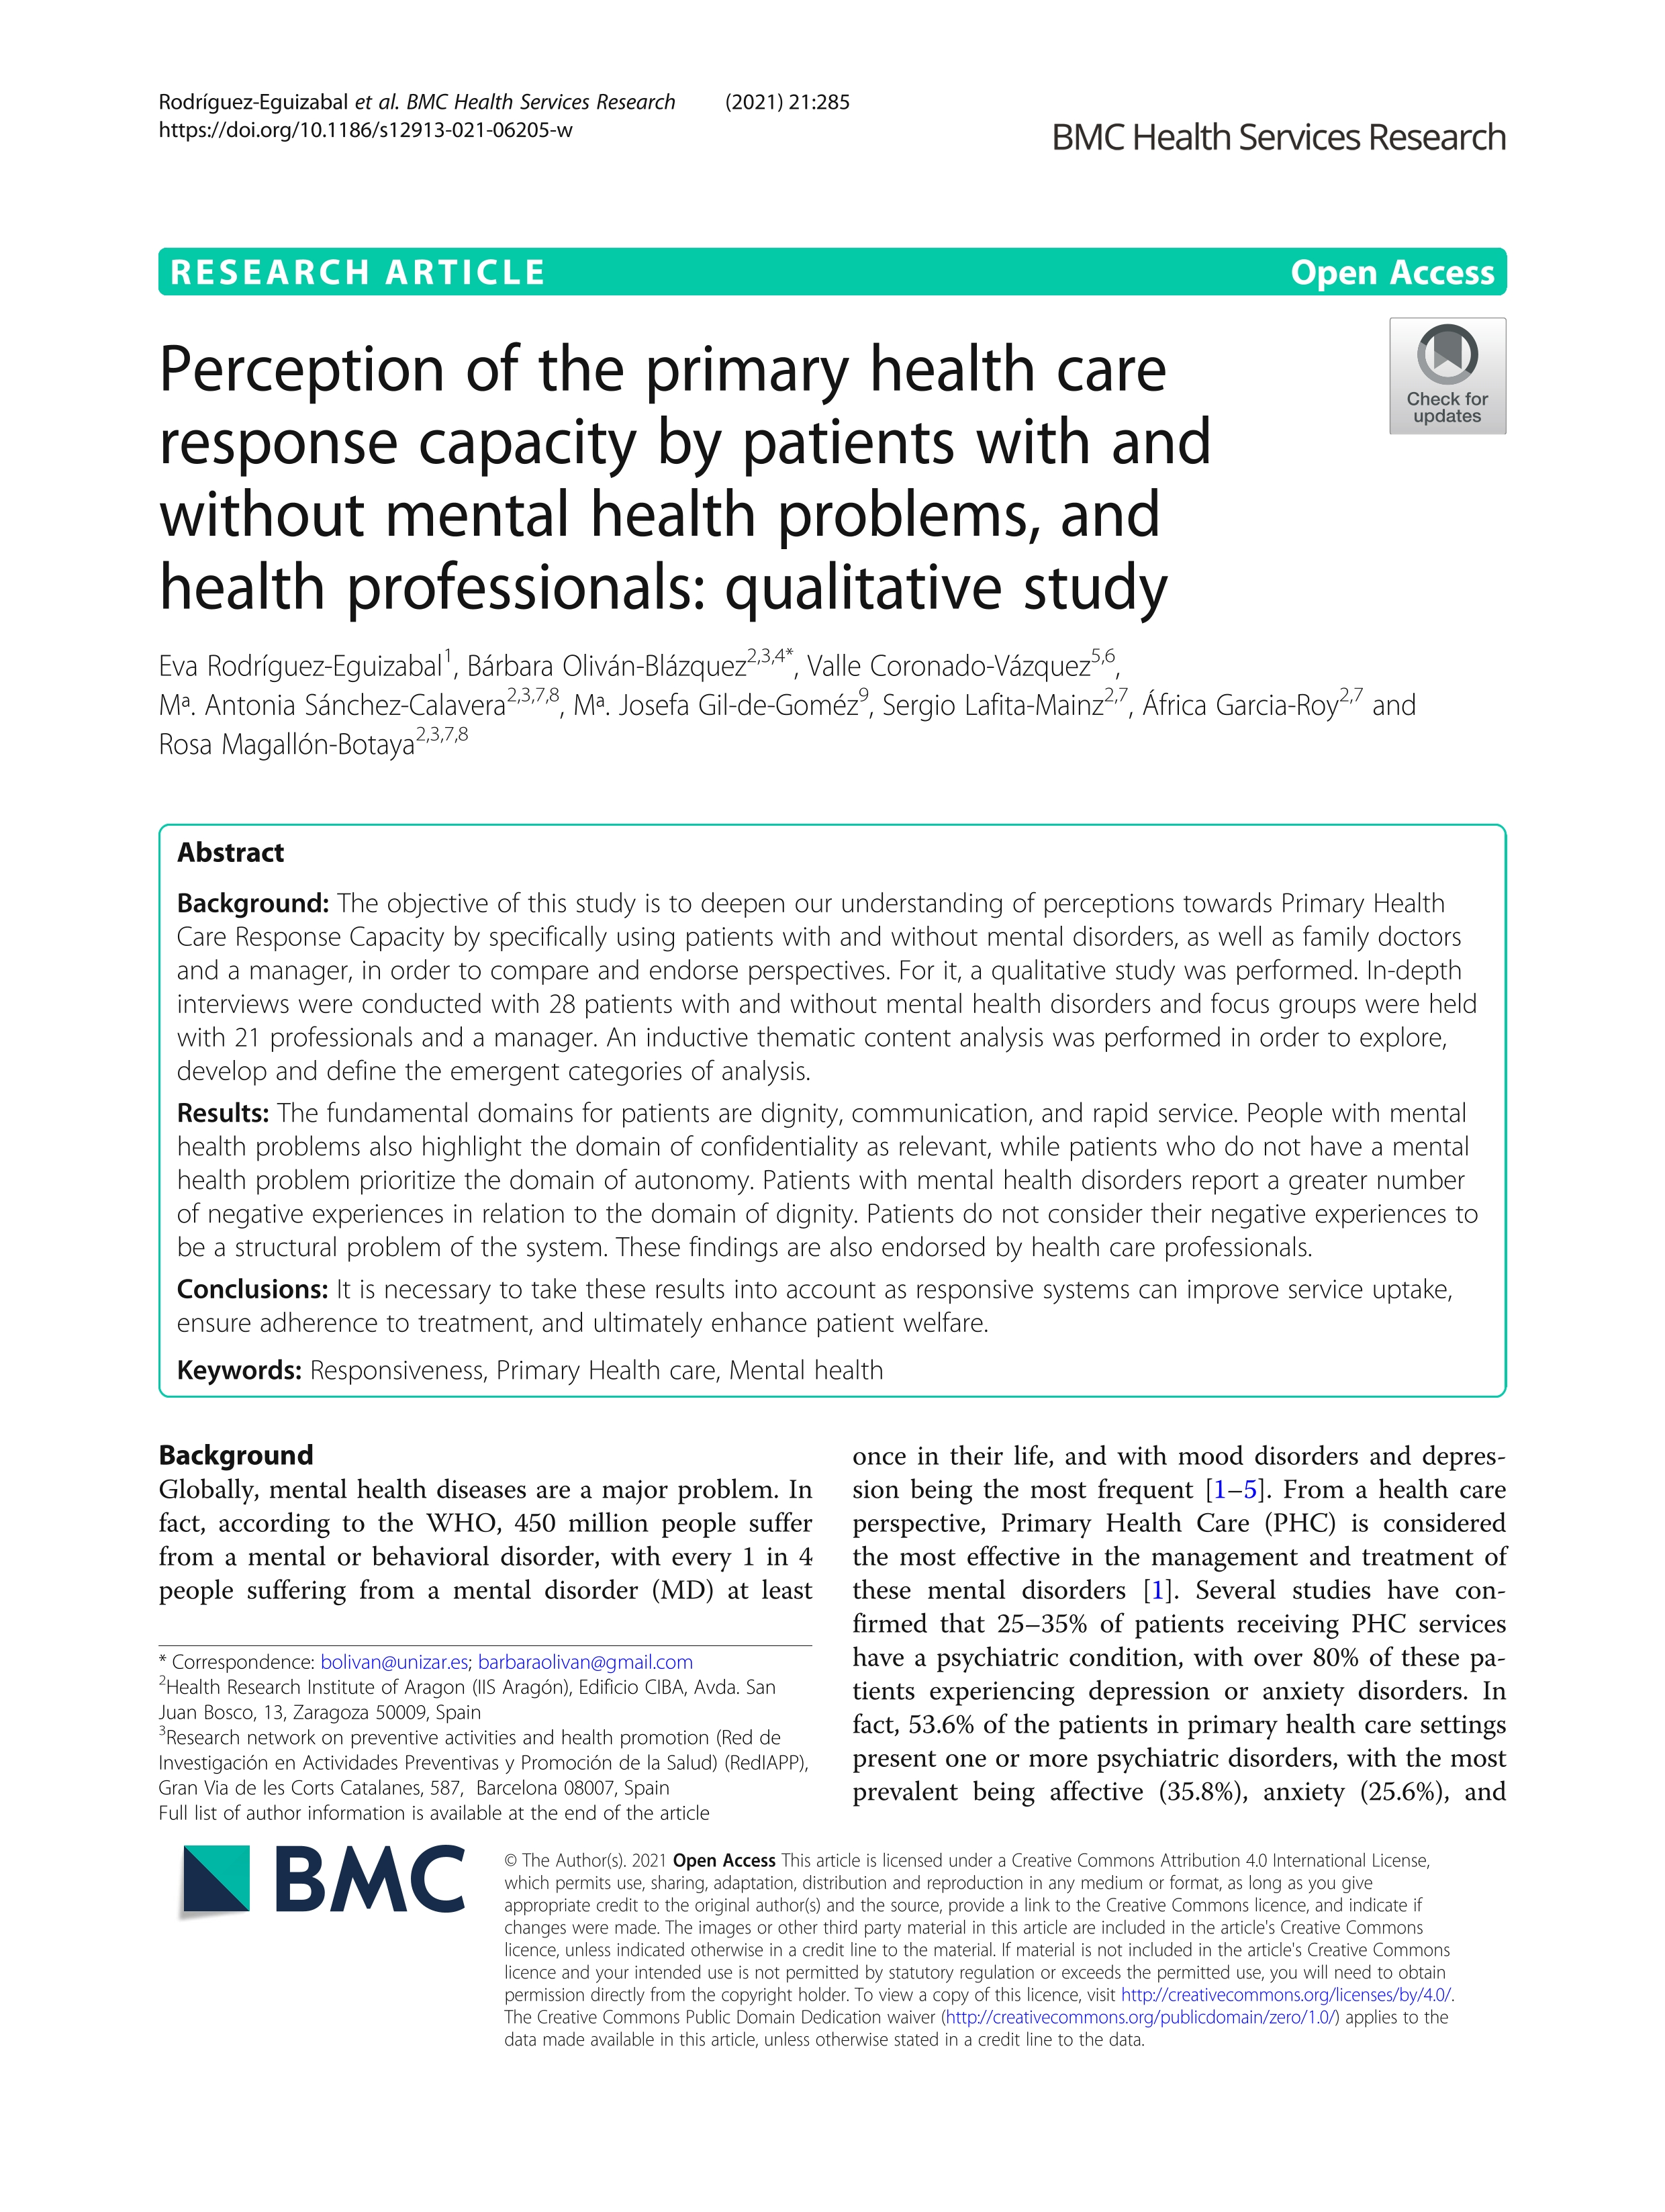 Perception of the primary health care response capacity by patients with and without mental health problems, and health professionals: qualitative study